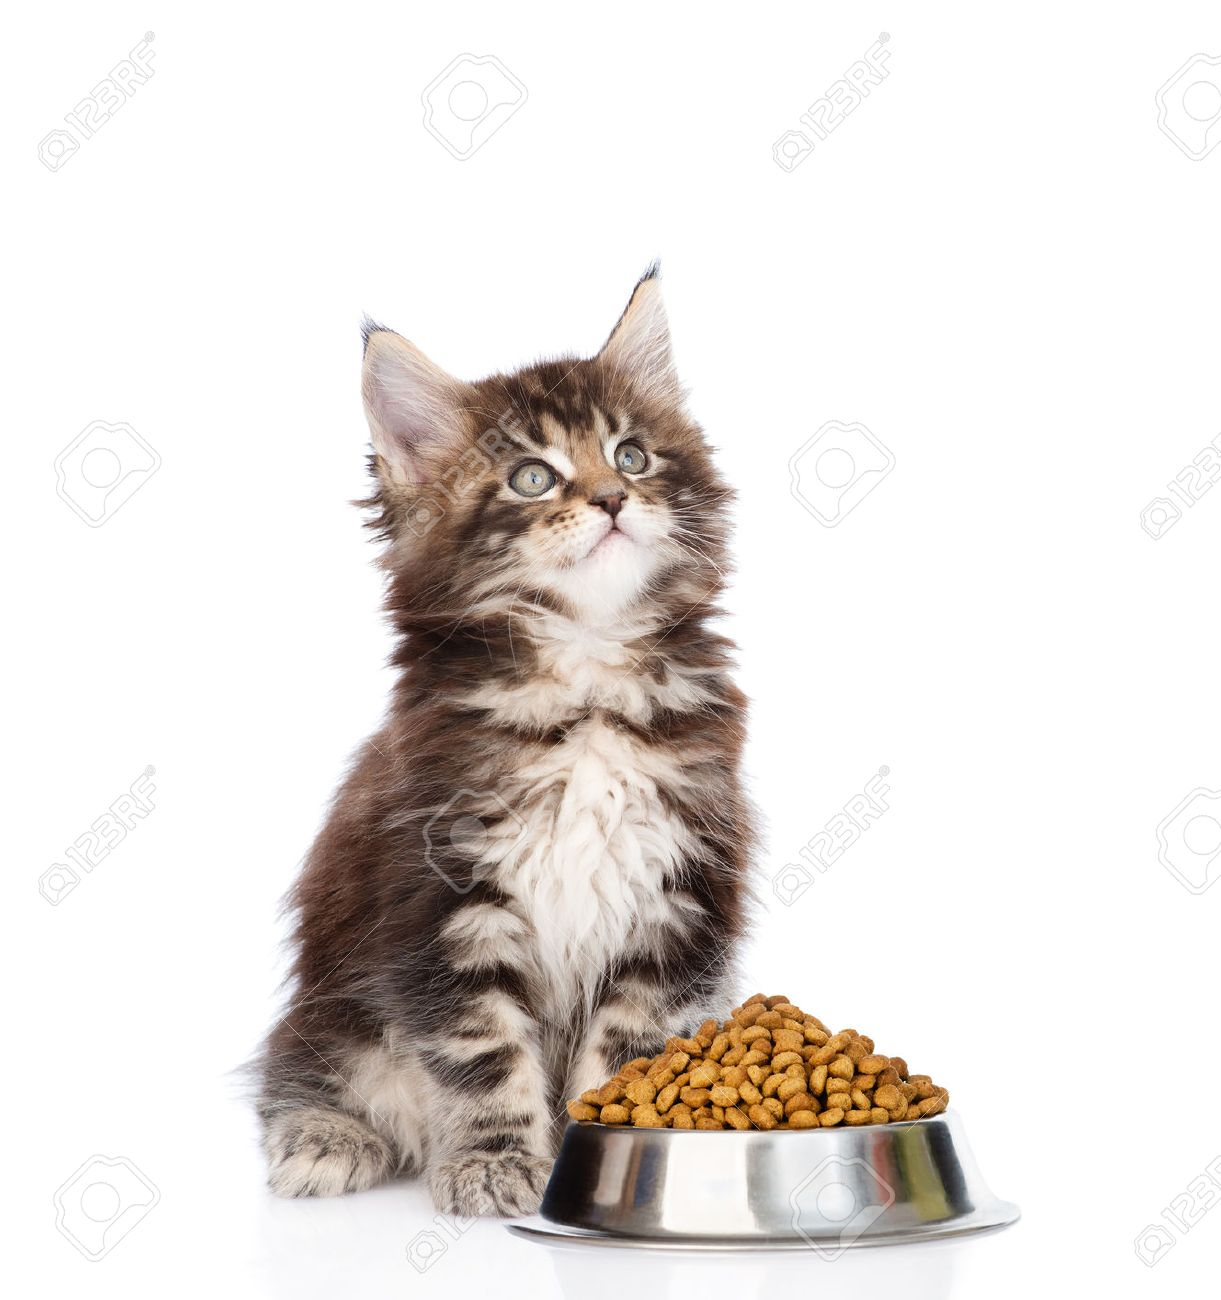 Maine Coon Kitten Sitting With A Bowl Of Dry Cat Food And Looking